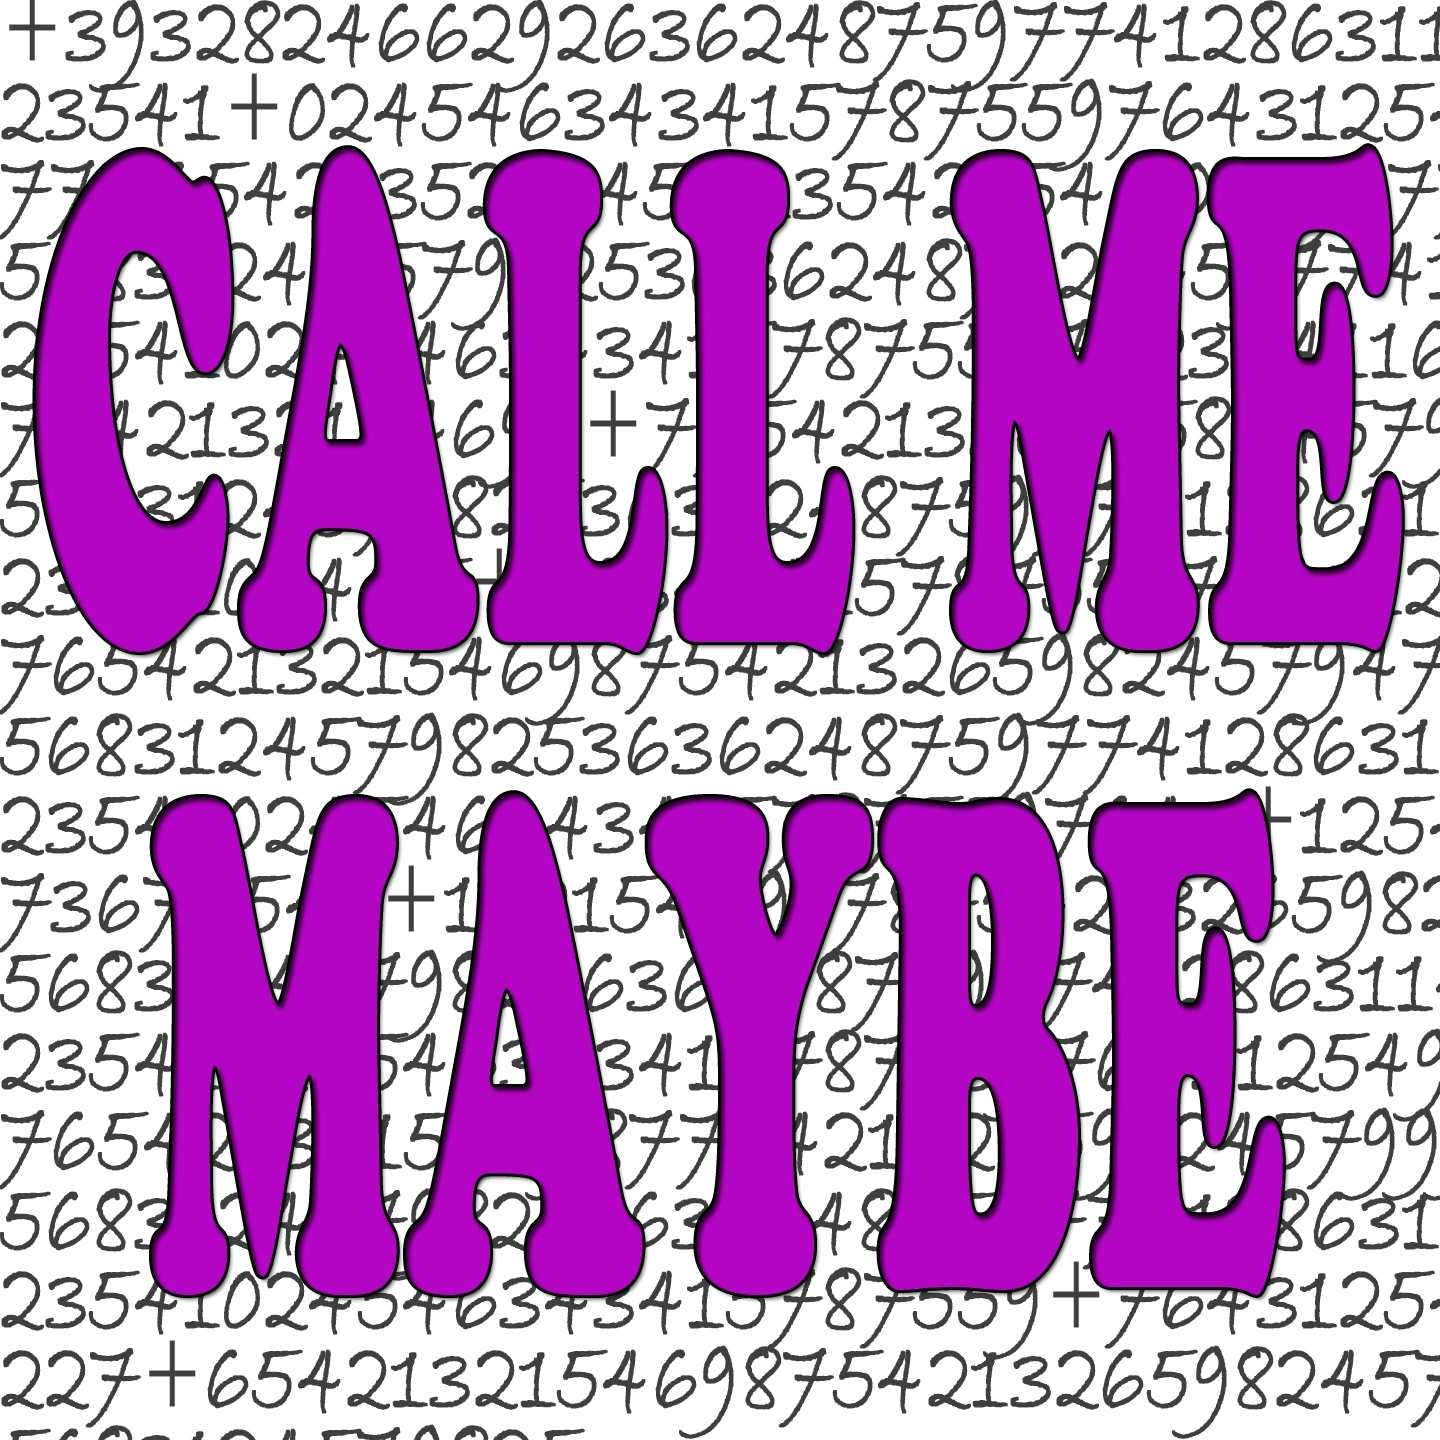 Call Me Maybe - Ringtone